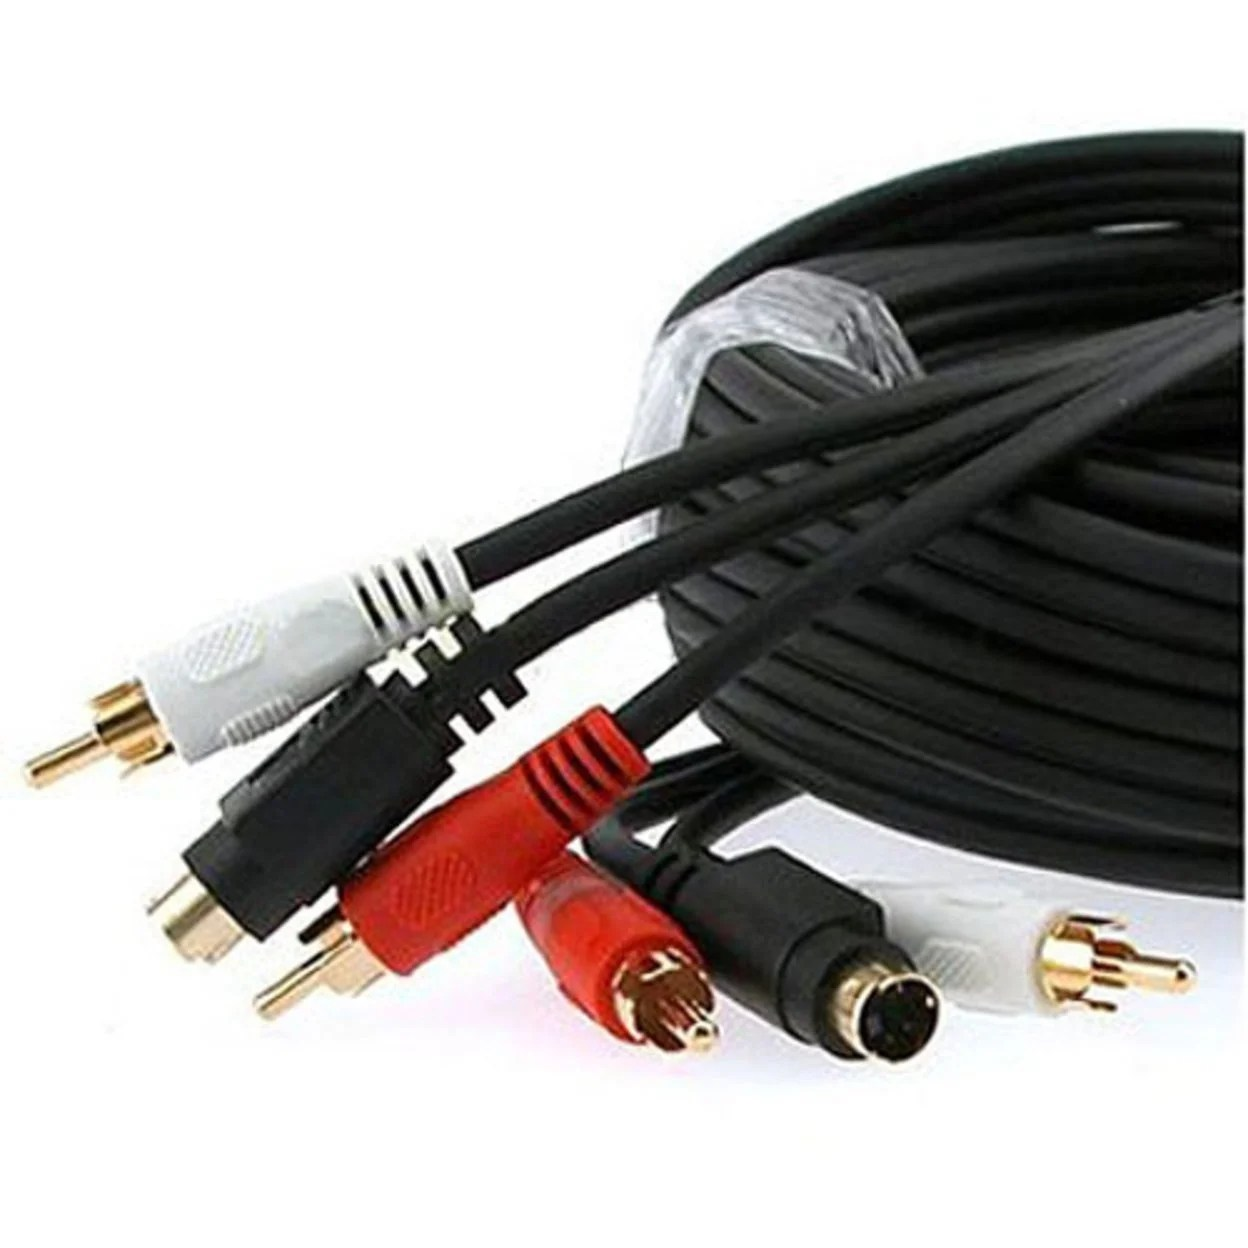 hight resolution of shop cmple 351 n s video amp 2 rca audio cable combo gold plated w 100ft free shipping today 27475435